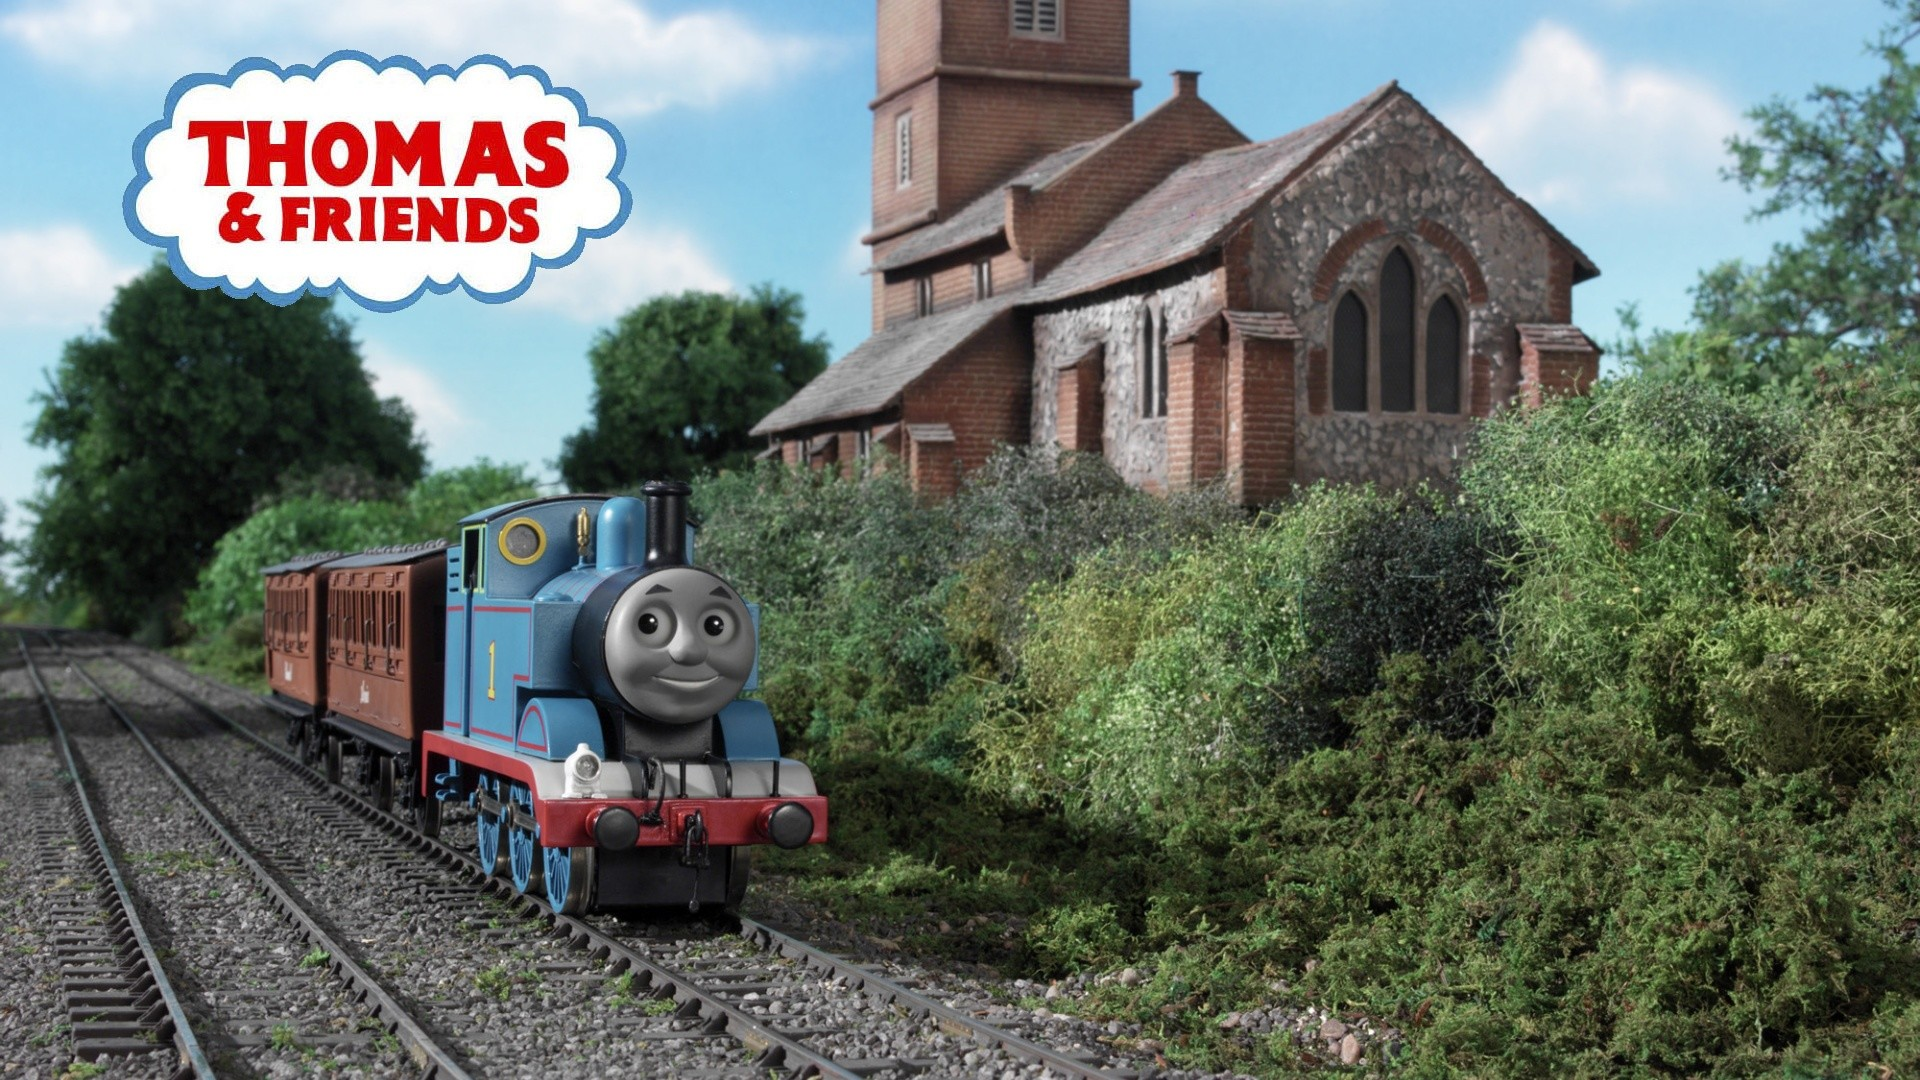 Thomas And Friends Desktop Wallpaper 83 Images